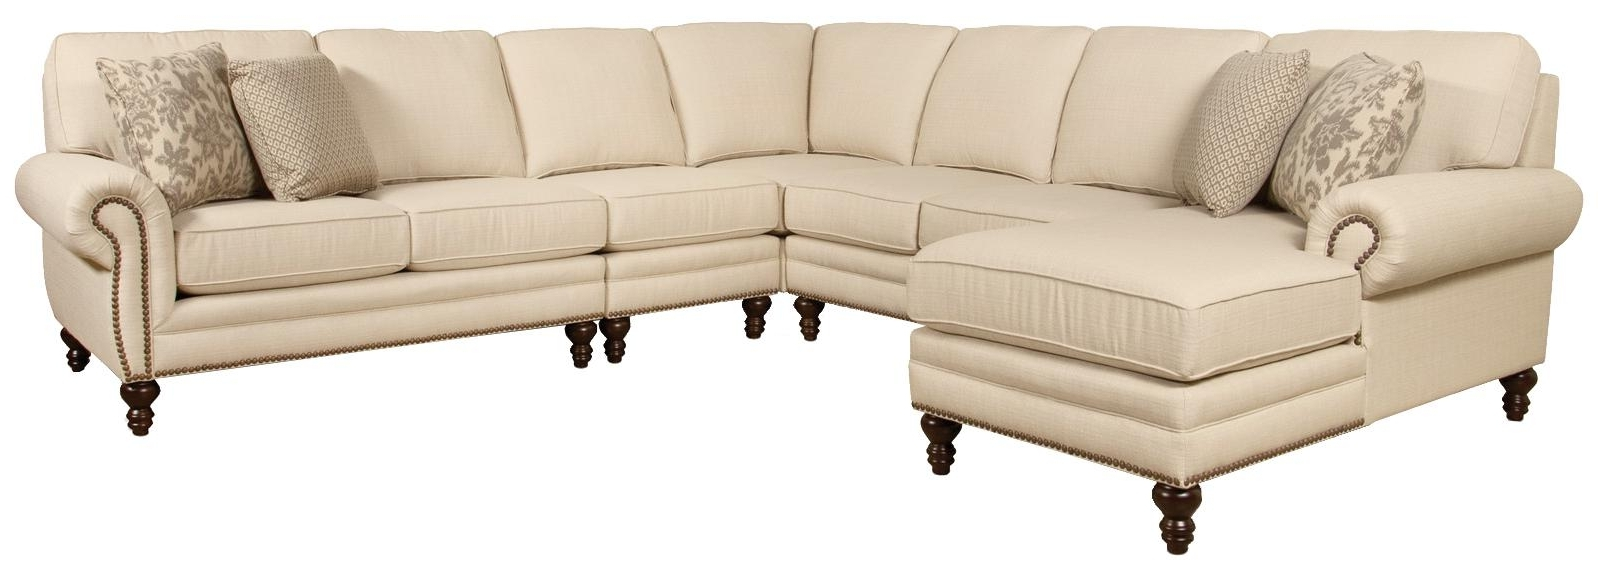 Preferred Sectional Sofas With Nailhead Trim For England Amix Seven Seat Sectional Sofa With Left Side Chaise (View 4 of 20)